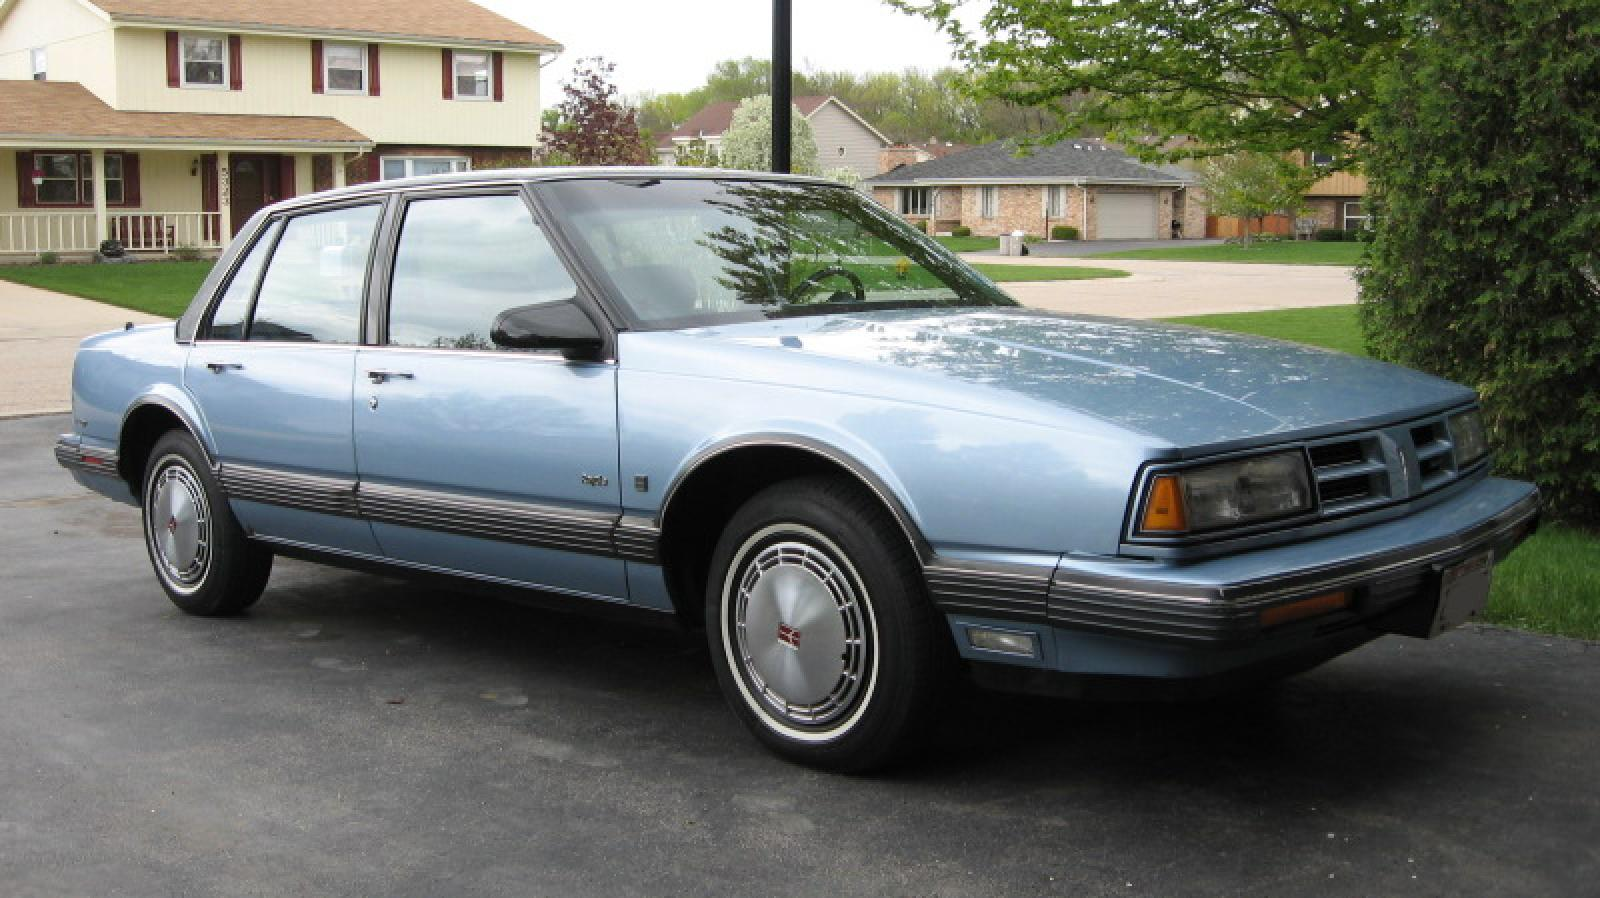 1992 Oldsmobile Eighty Eight Royale Information And Photos 88 Picture Of Engine 800 1024 1280 1600 Origin